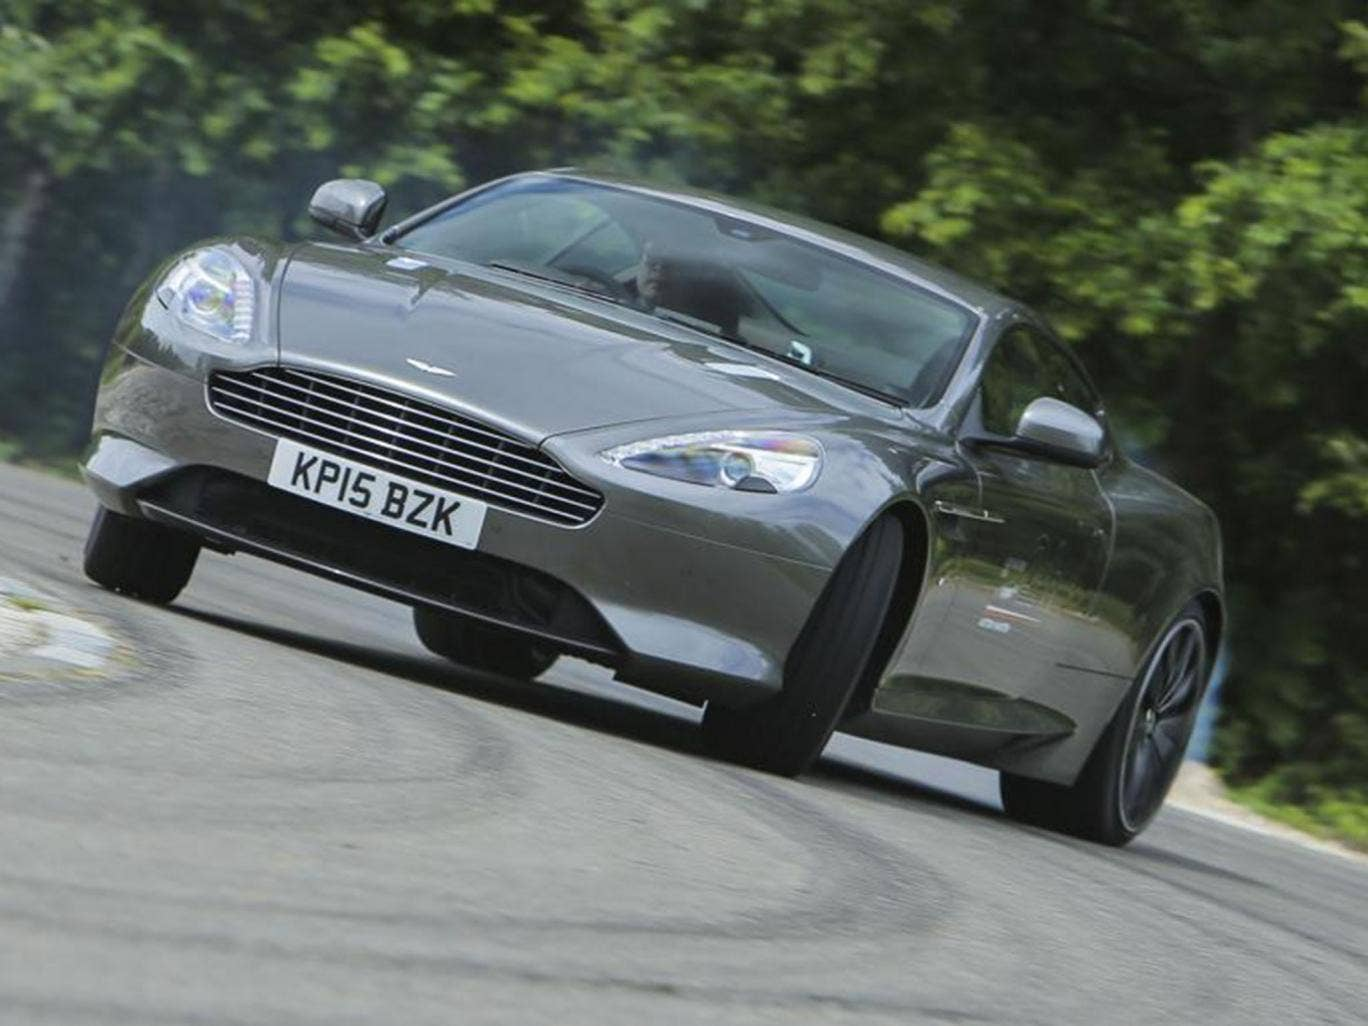 Aston Martin DB How To Buy Secondhand With Your Head As Well As - Cheap aston martin